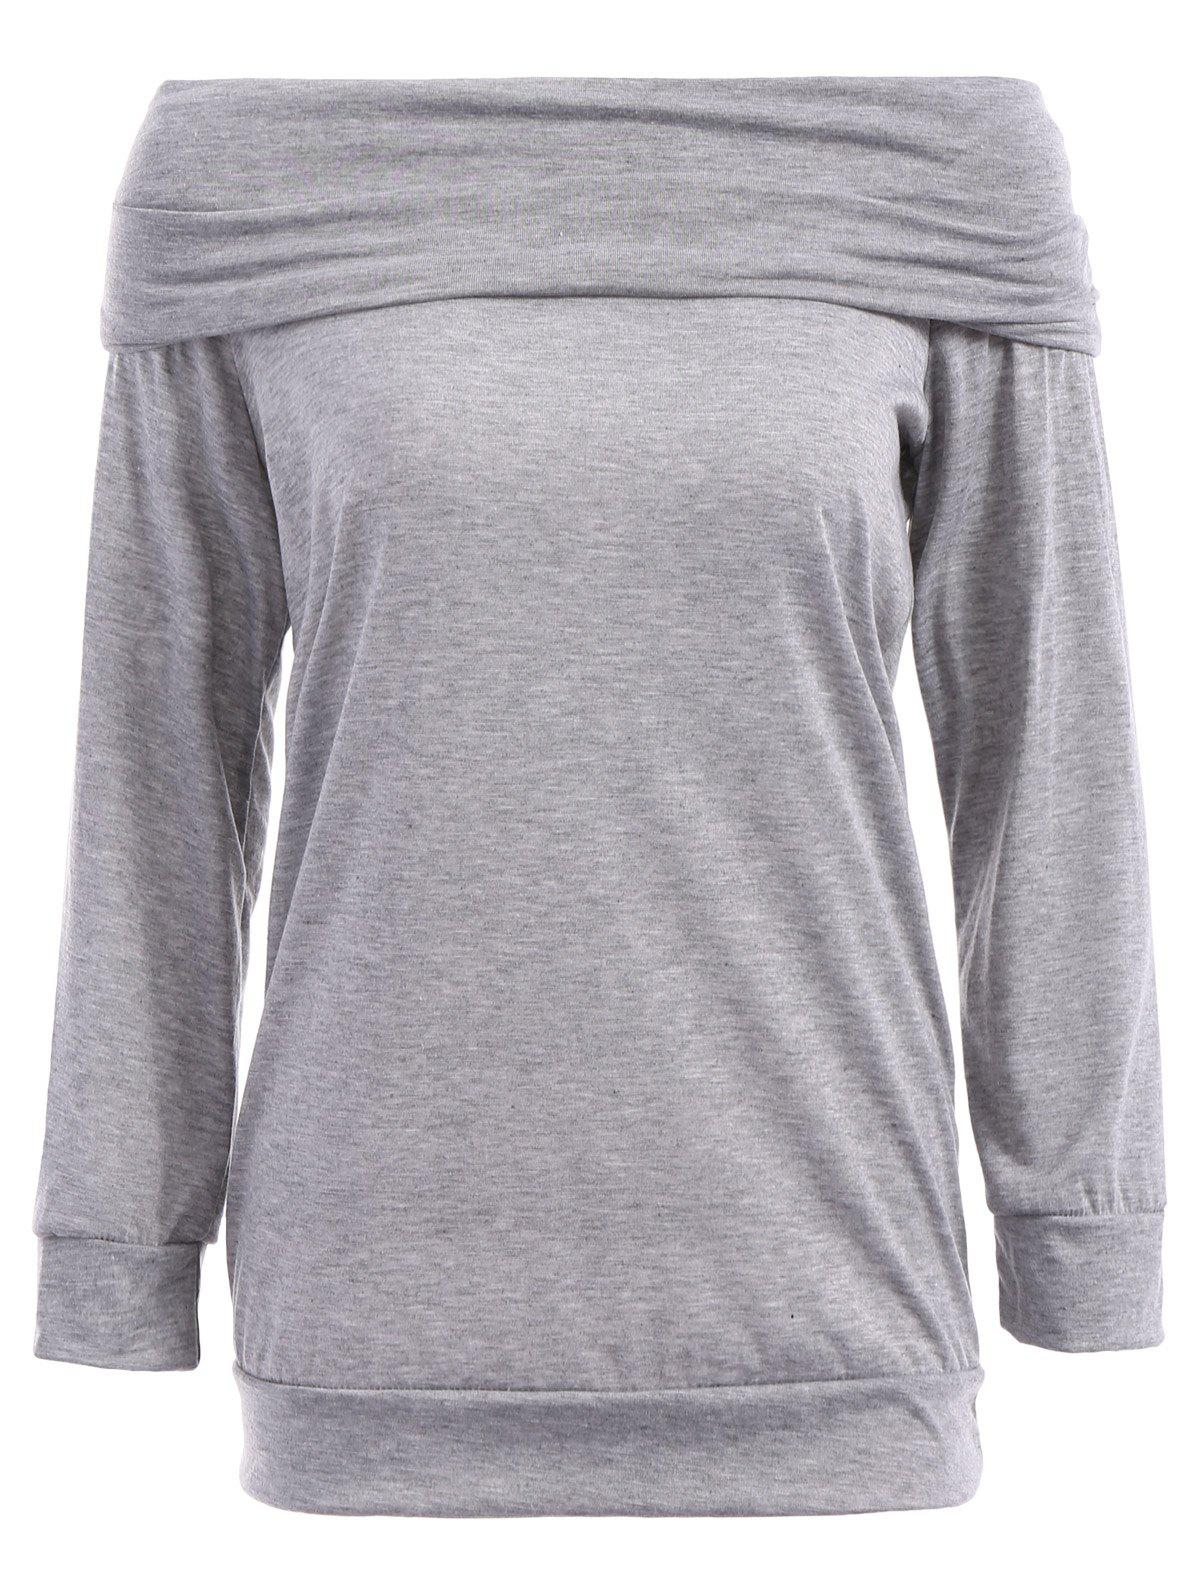 Sexy Solid Color Off The Shoulder Long Sleeve Sweatshirt For Women - GRAY S